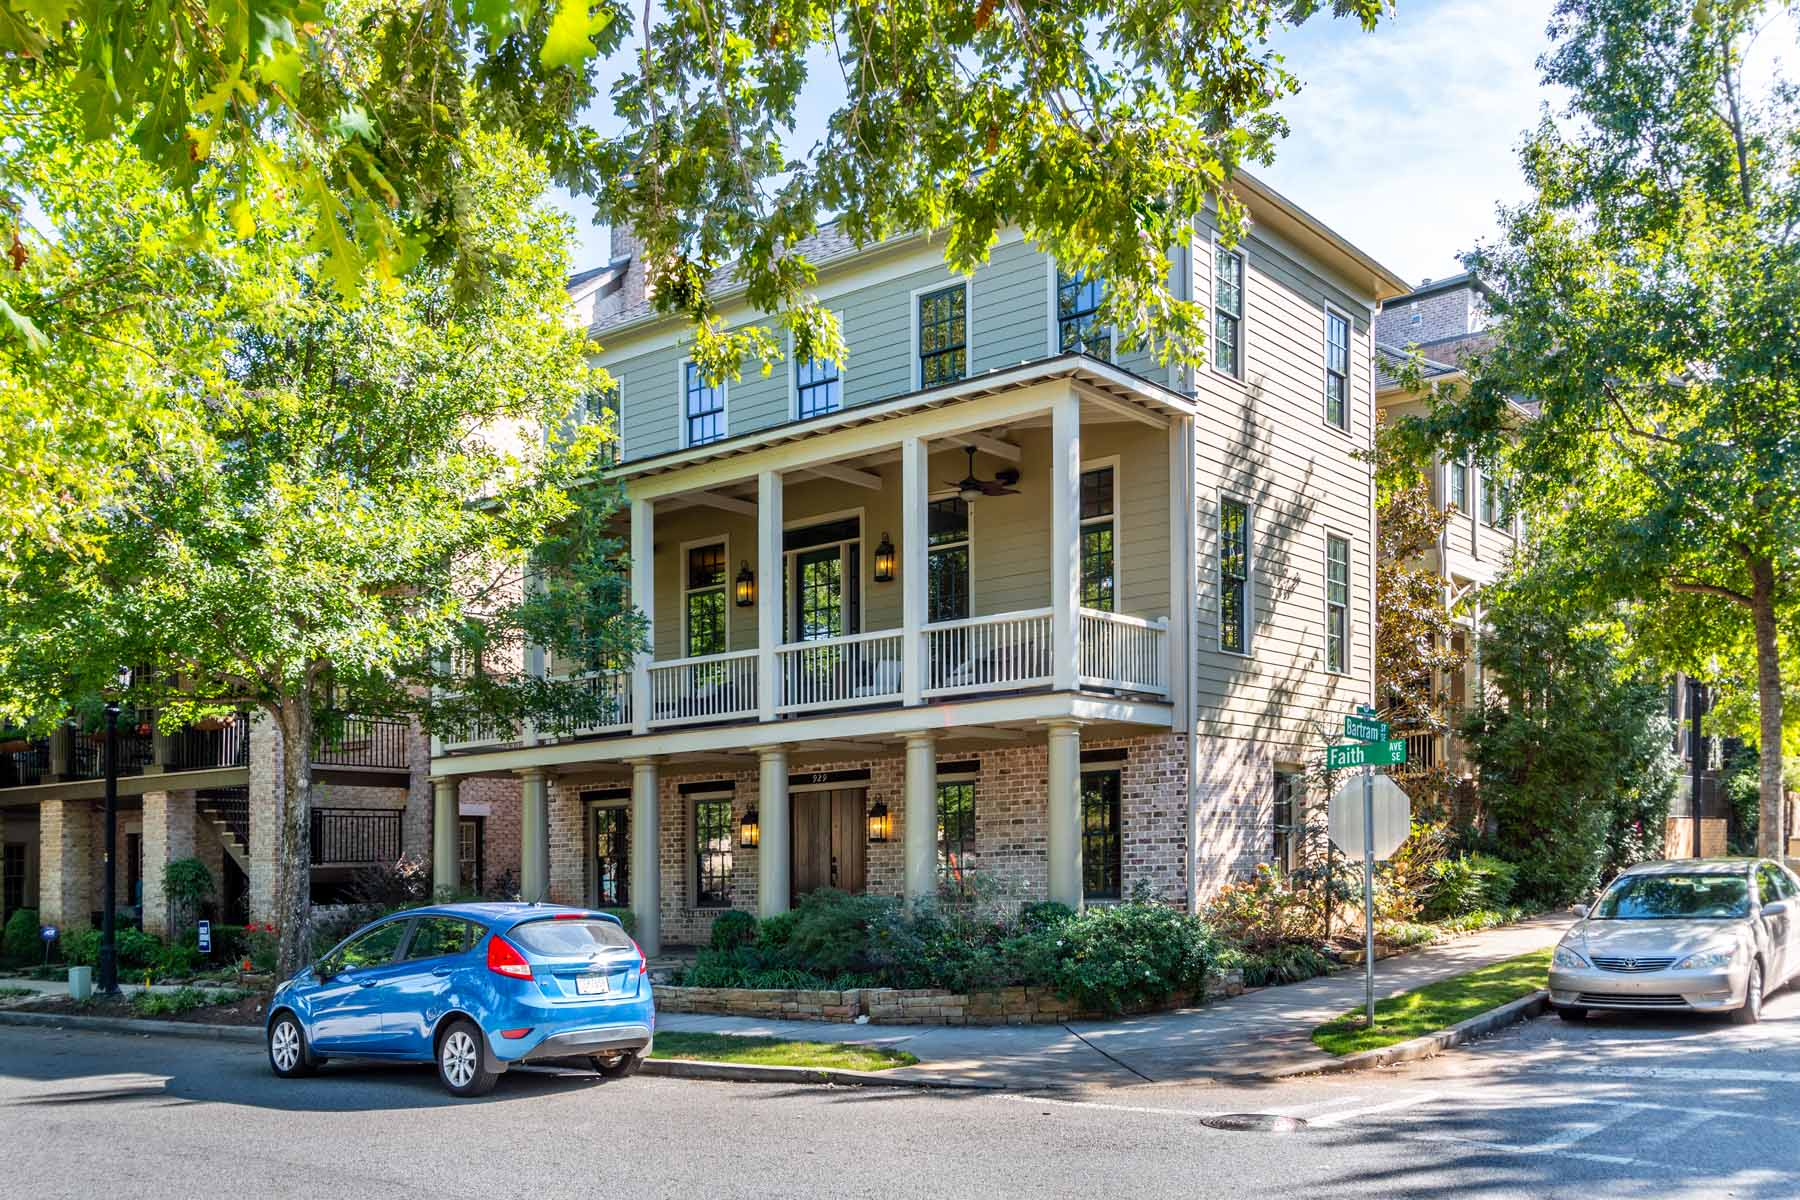 Single Family Home for Rent at Stunning Hedgewood Home For Lease In Glenwood Park! Directly On The Park! 929 Faith Avenue SE A Atlanta, Georgia 30316 United States